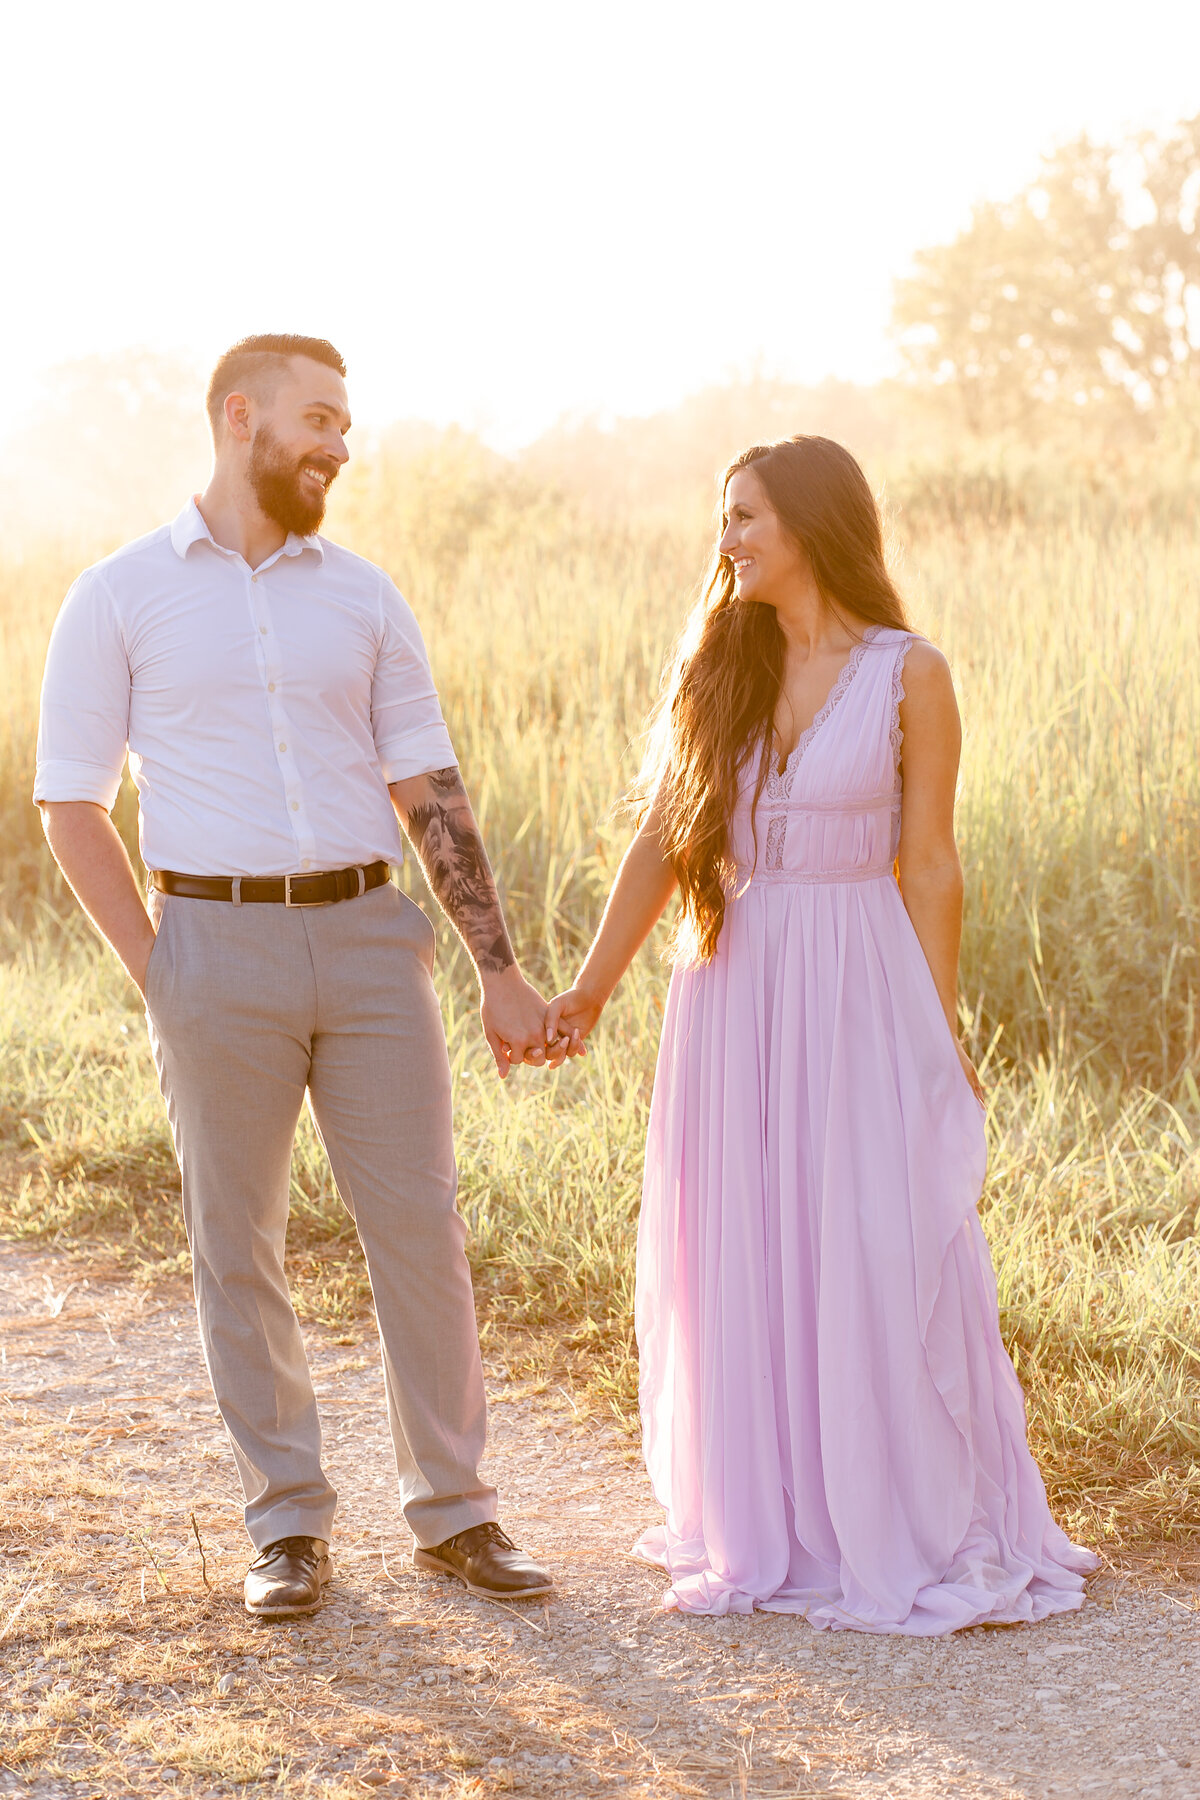 Summer Romantic Sunset Engagement Session guy and girl holding hands in lavender maxi dress in field on dirt road at Busch Wildlife in St. Louis by Amy Britton Photography Photographer in St. Louis